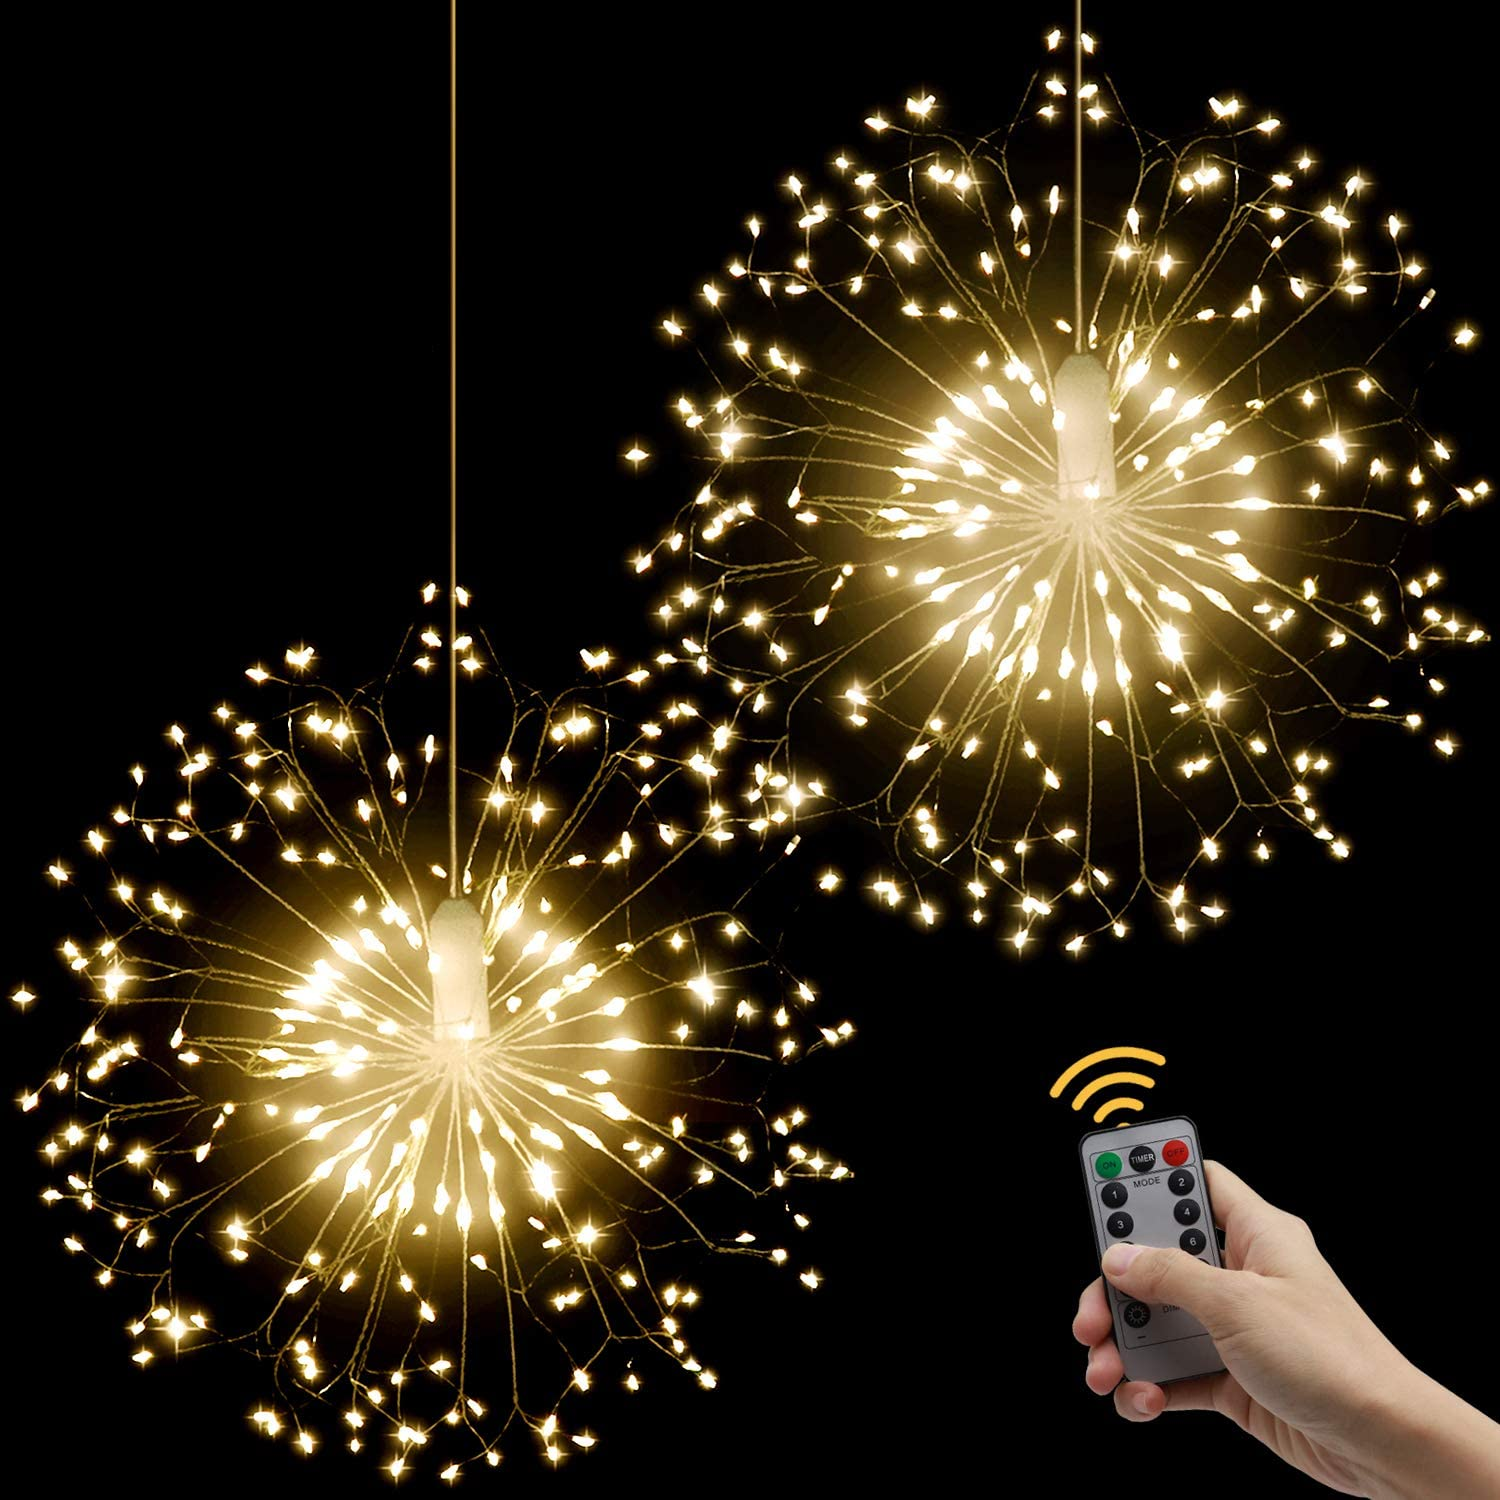 Starburst Lights, LED Firework String Light 8 Modes with Remote Control, Battery Operated Hanging Fairy Lights for Christmas Wedding Party Patio Garden Decoration-2 Pack